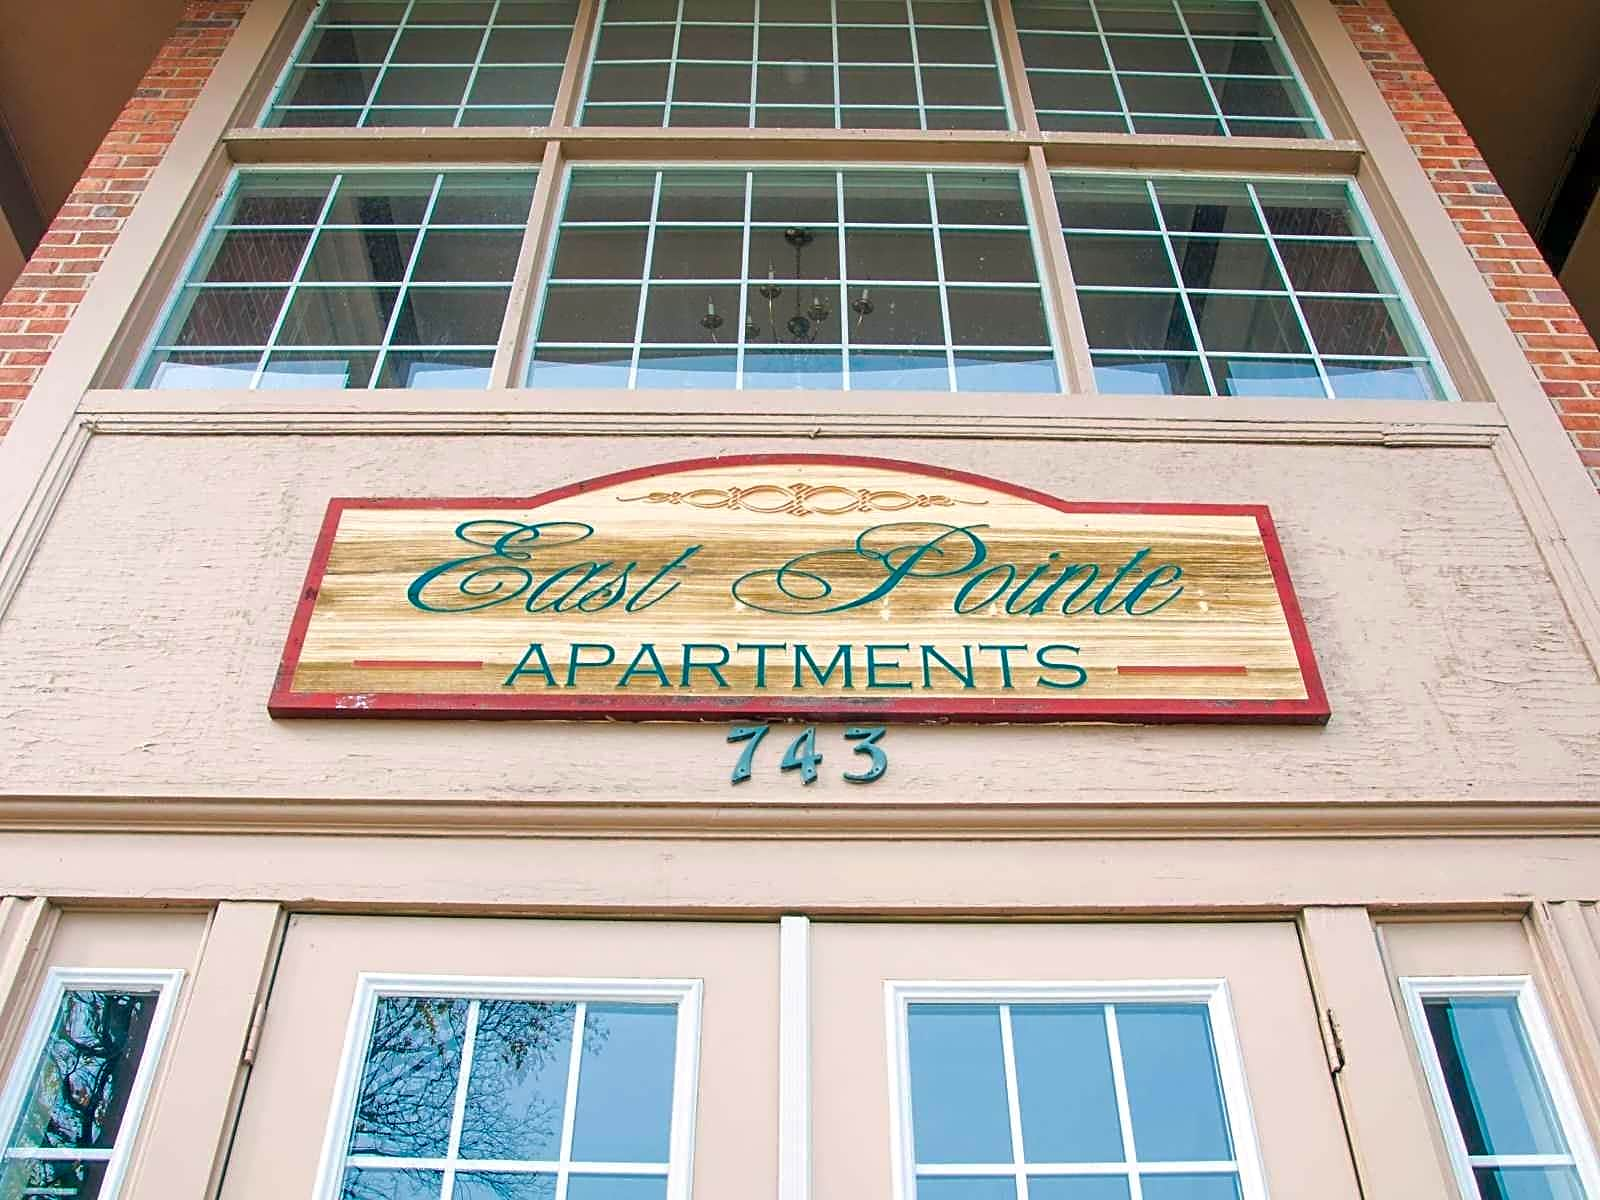 Apartments Near Wright State East Pointe Apartments for Wright State University Students in Dayton, OH